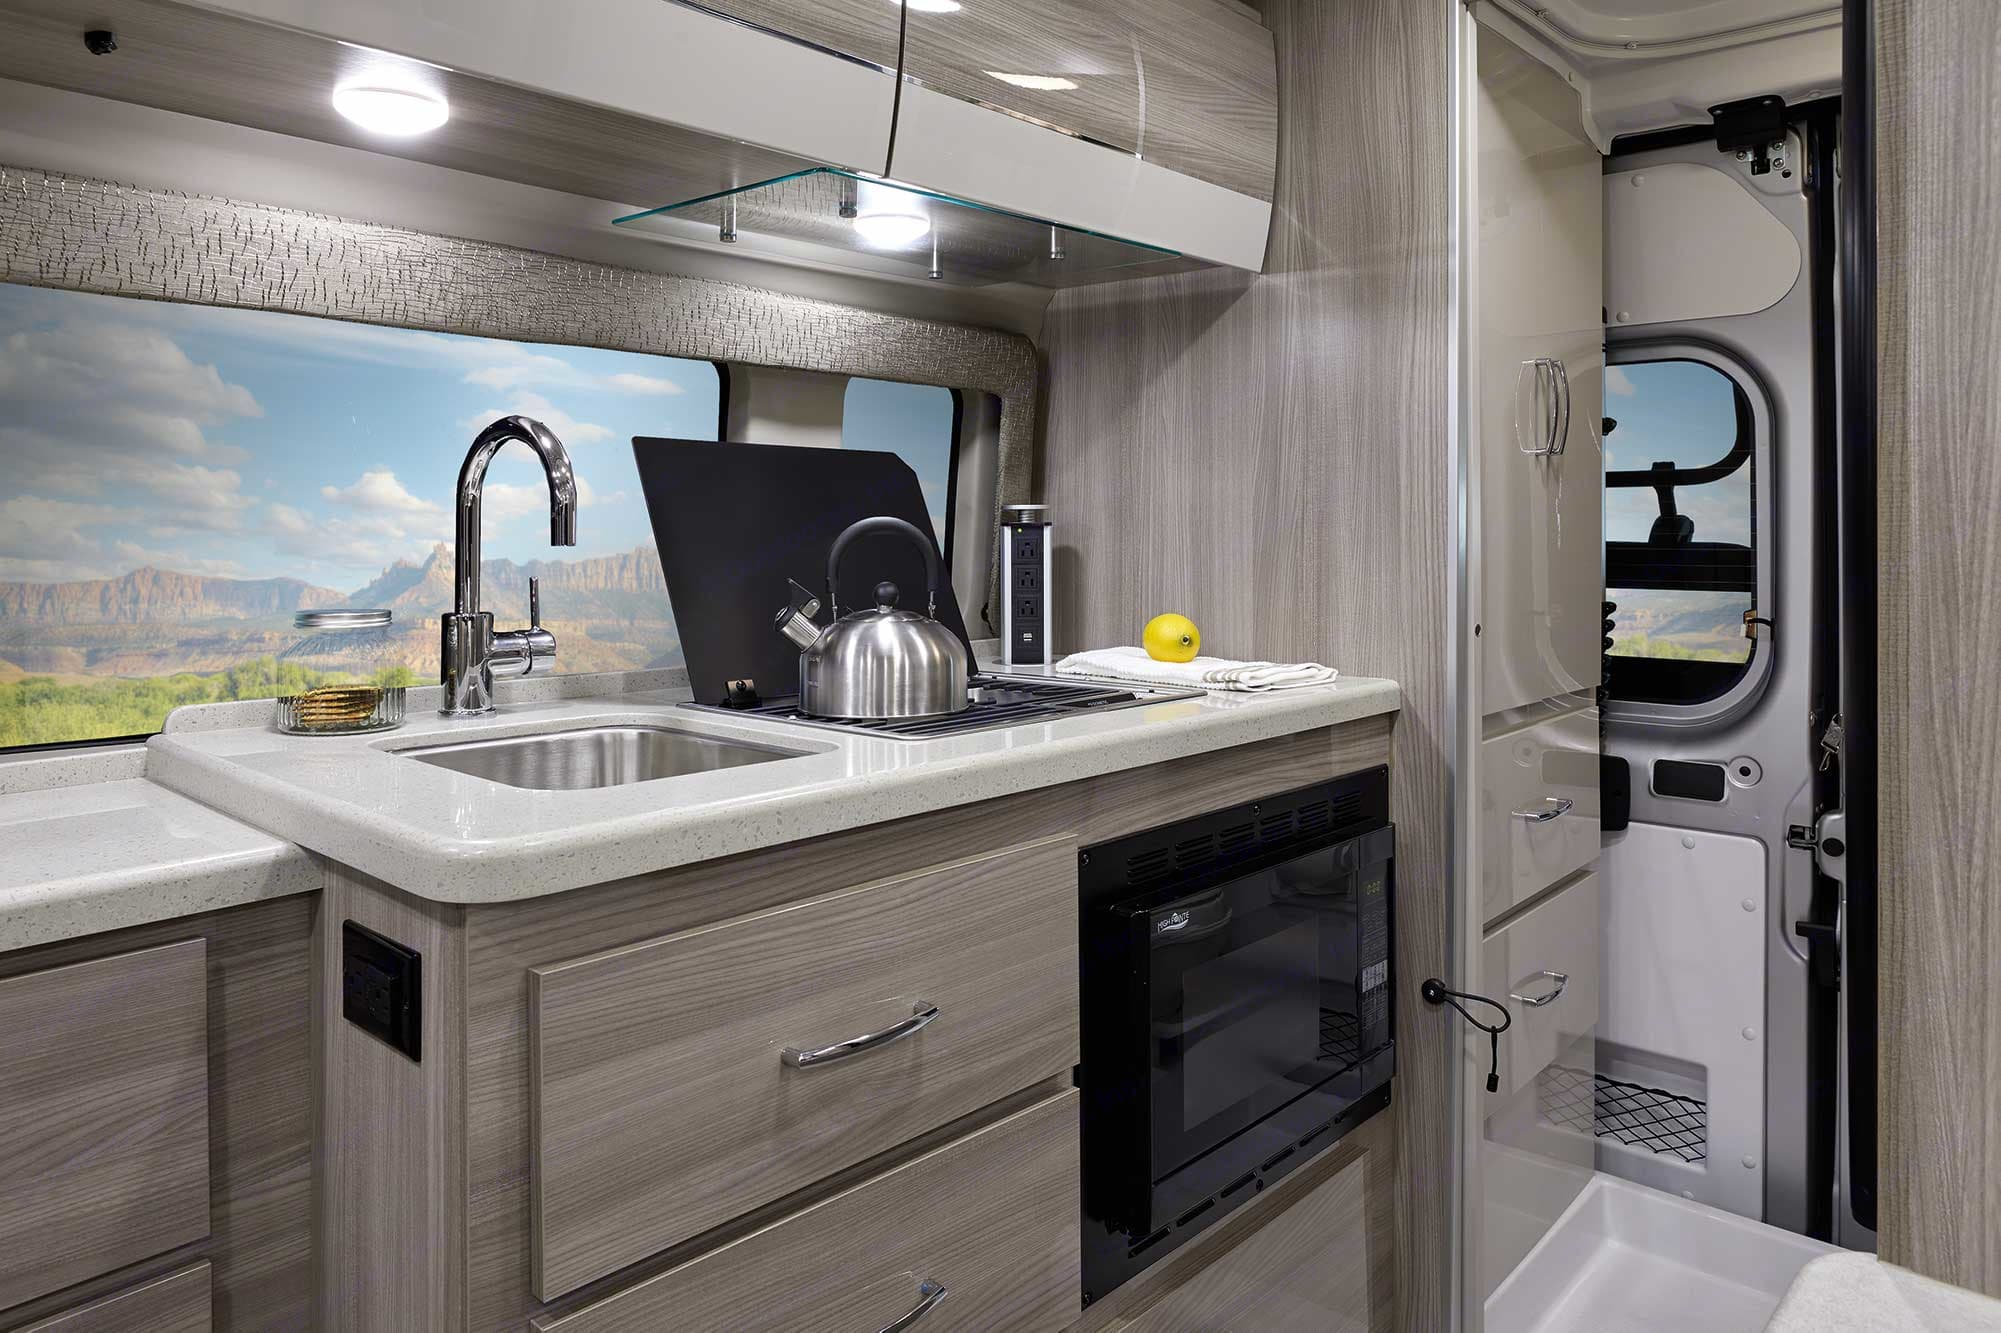 KITCHEN AREA, FRIDGE ACROSS FROM HERE. Thor Motor Coach Other 2020